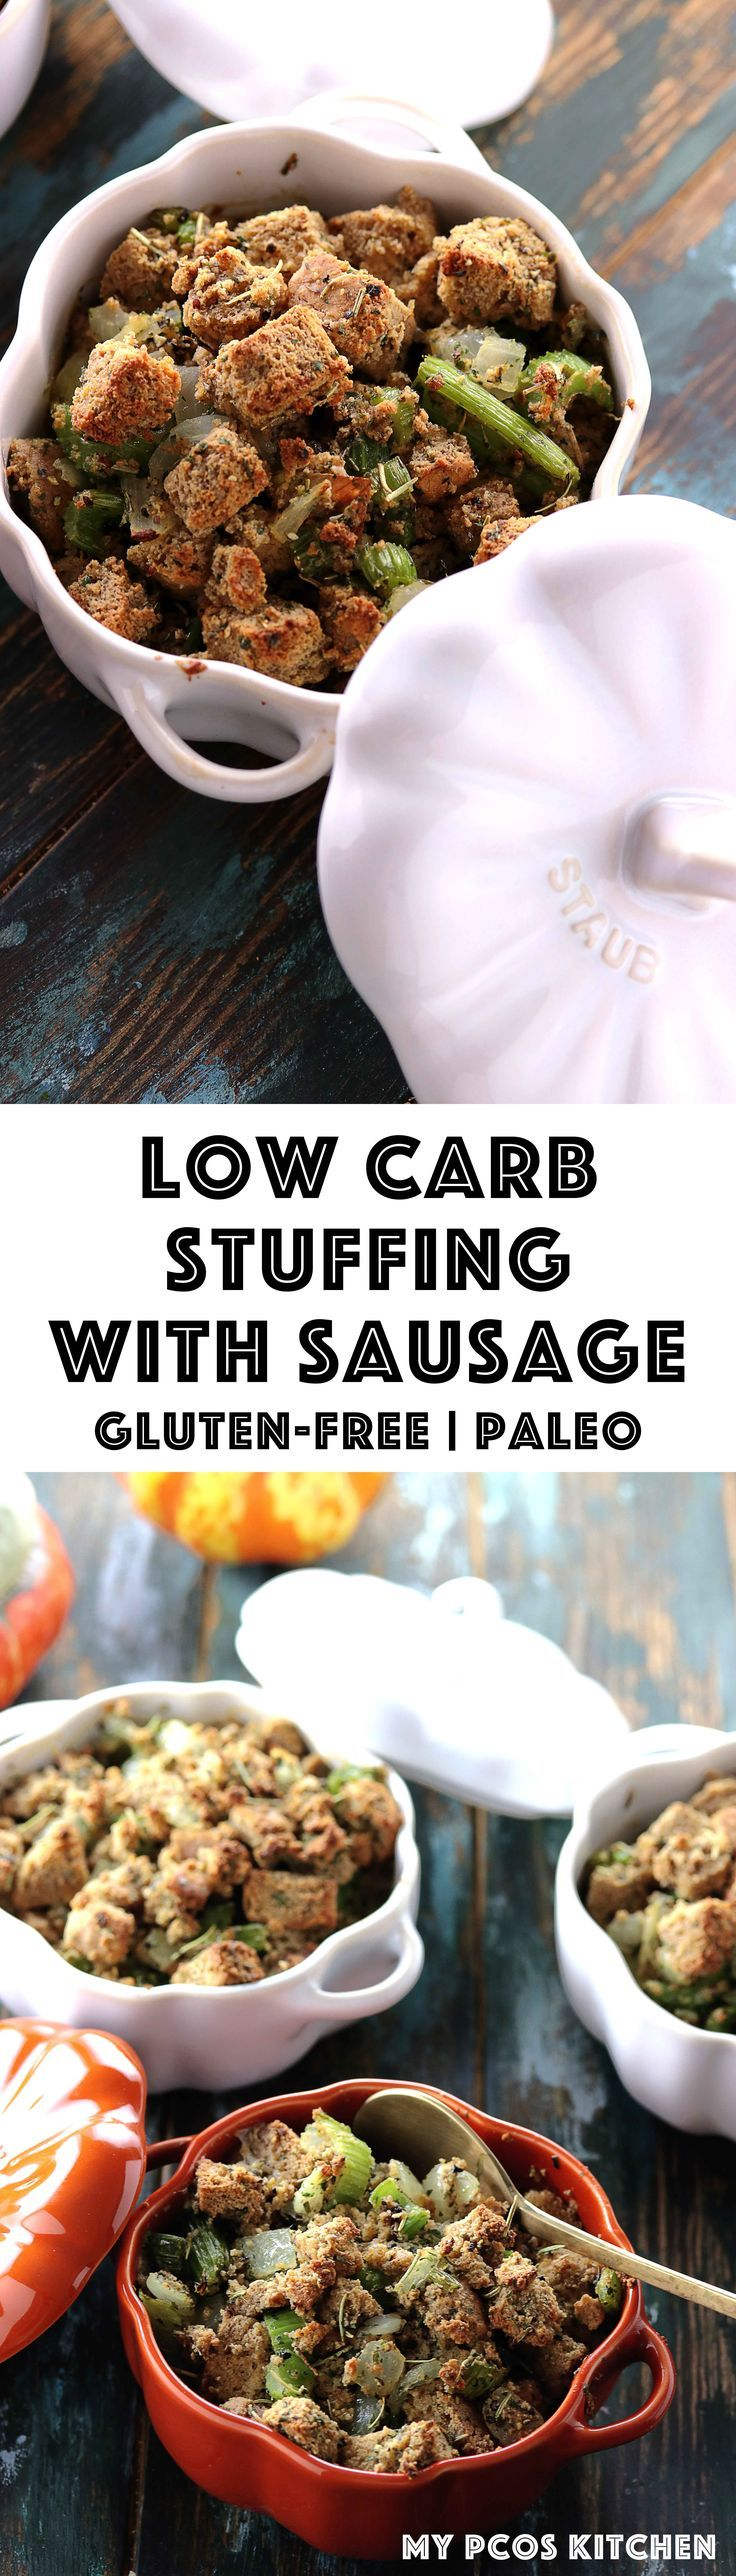 My PCOS Kitchen - Low Carb Stuffing with Paleo Bread & Sausage - An easy gluten-free and grain-free stuffing made with an almond bread. #glutenfree #paleo #lowcarb #thanksgiving via @mypcoskitchen